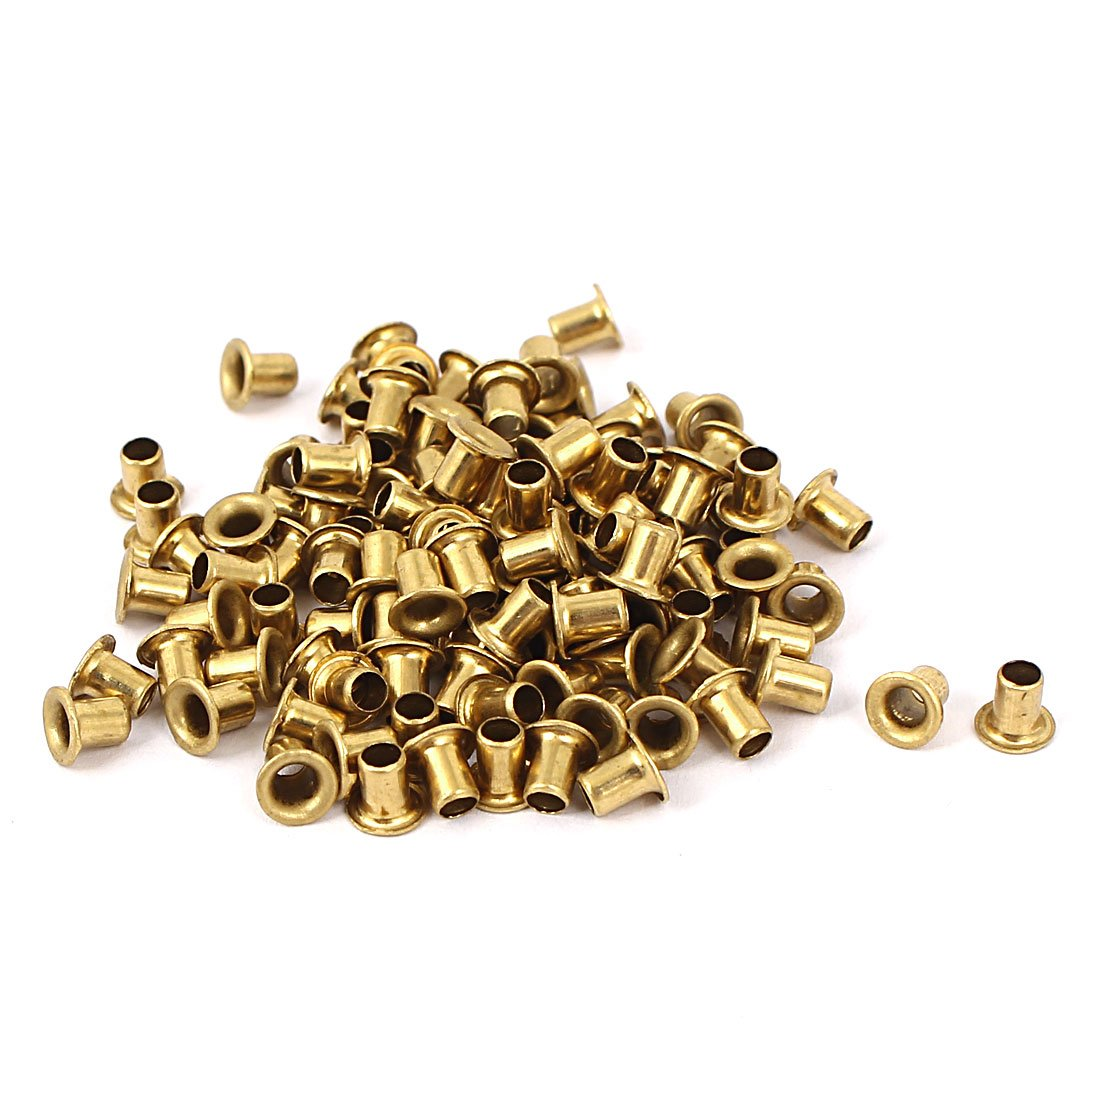 Uxcell a16032800ux0884 3mm x 4mm Double Sided Brass Plated Hollow Rivets Tool Gold Tone 100 Pcs